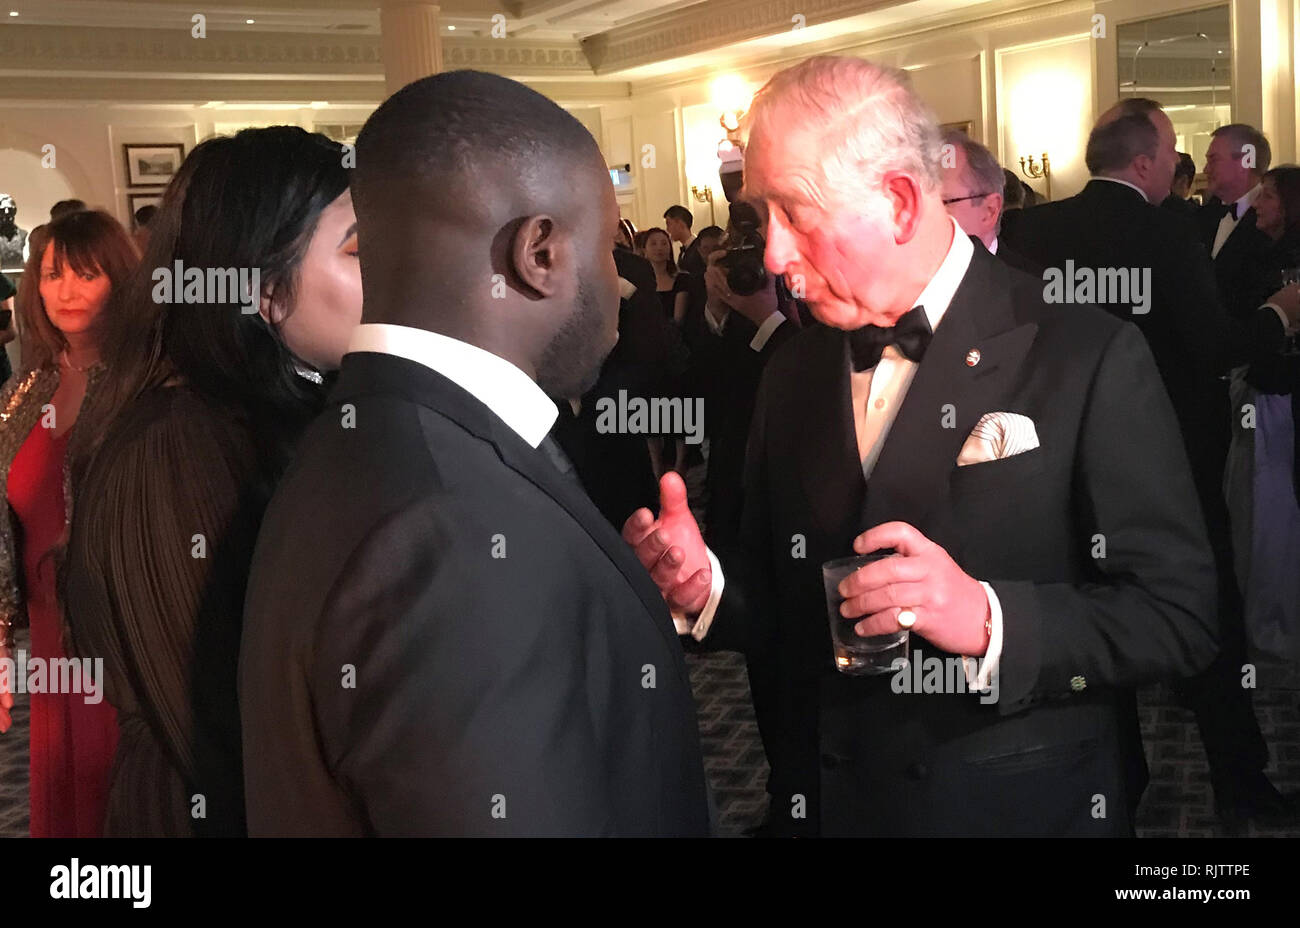 BEST QUALITY AVAILABLE The Prince of Wales speaks to young ambassadors Aisa Ali (left) and Gideon Buabeng during an Invest in Futures Reception at the Savoy in London. - Stock Image